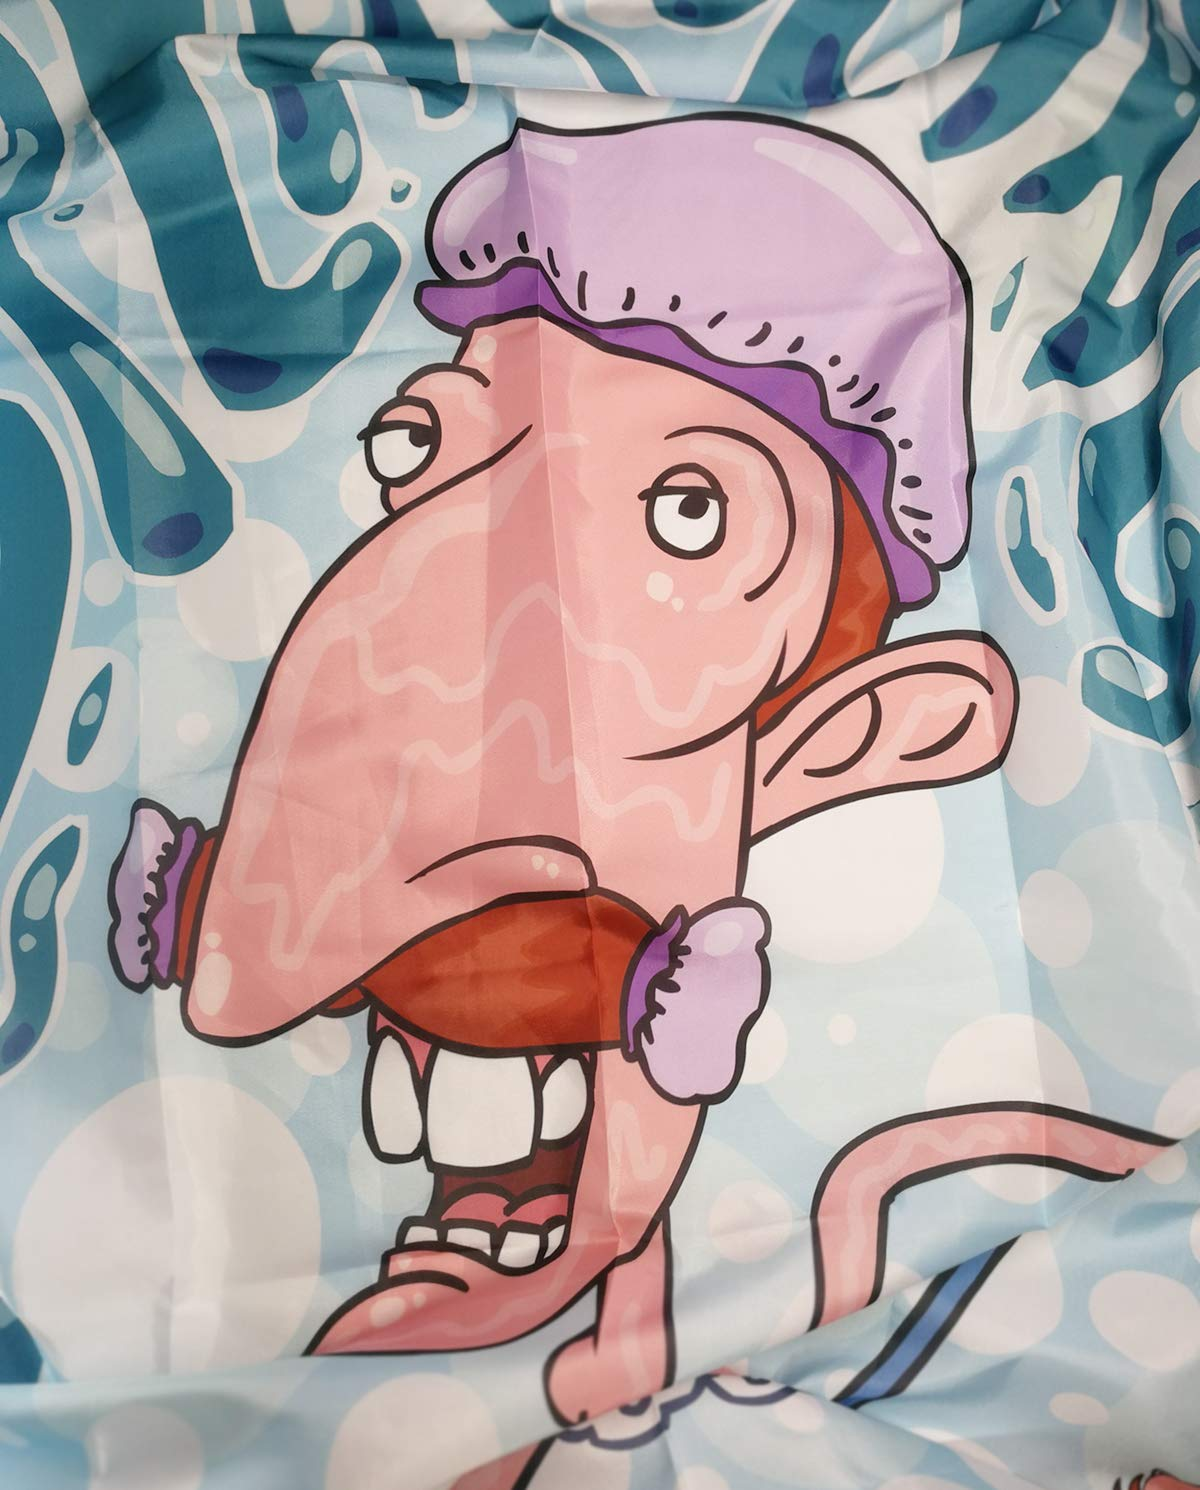 Shower Curtain Nigel Thornberry Custom Durable Fabric Jpg 1200x1490 Splashing